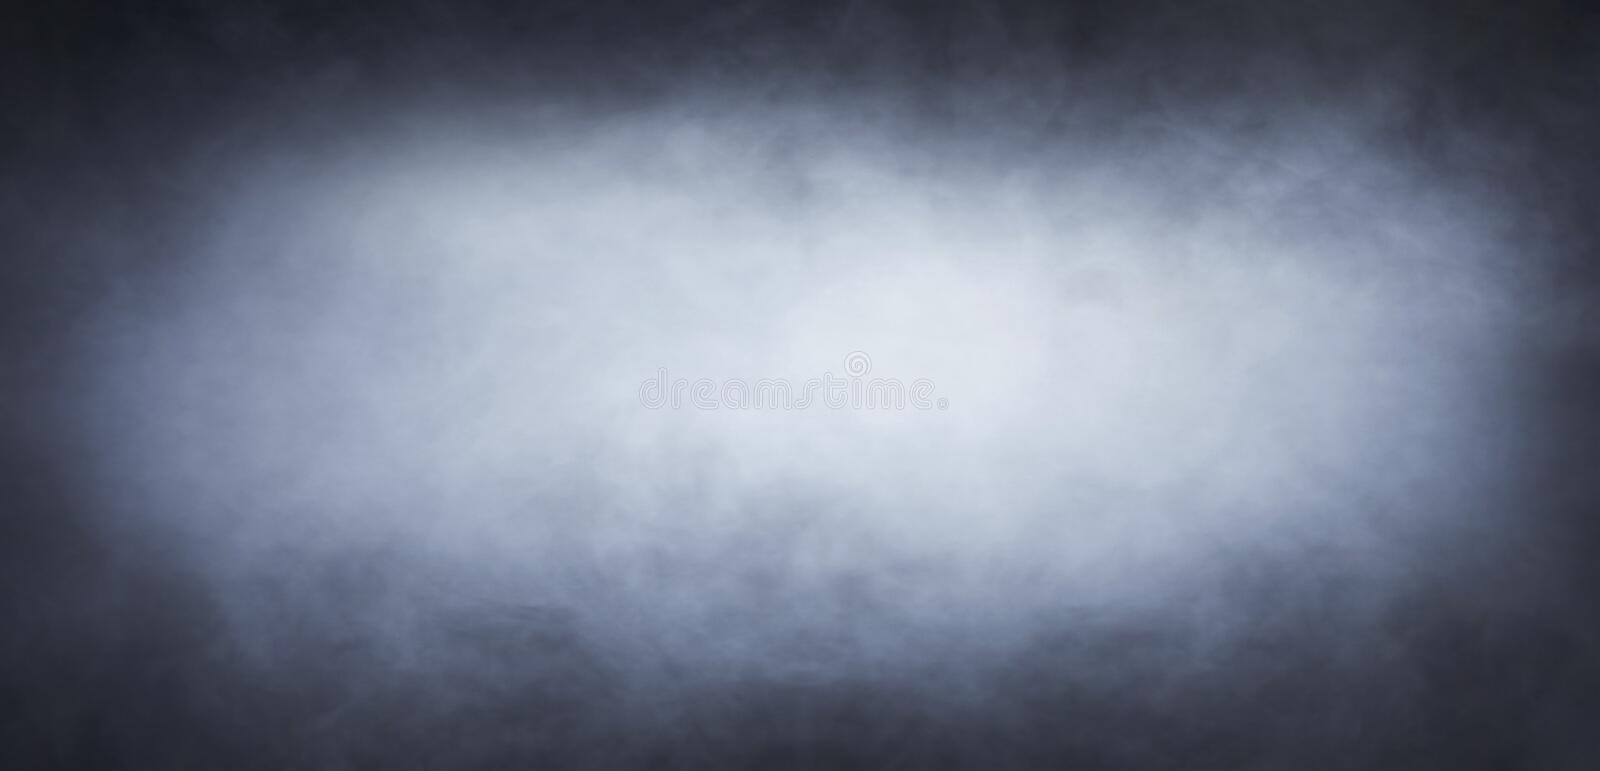 Abstract smoke texture over black background stock image